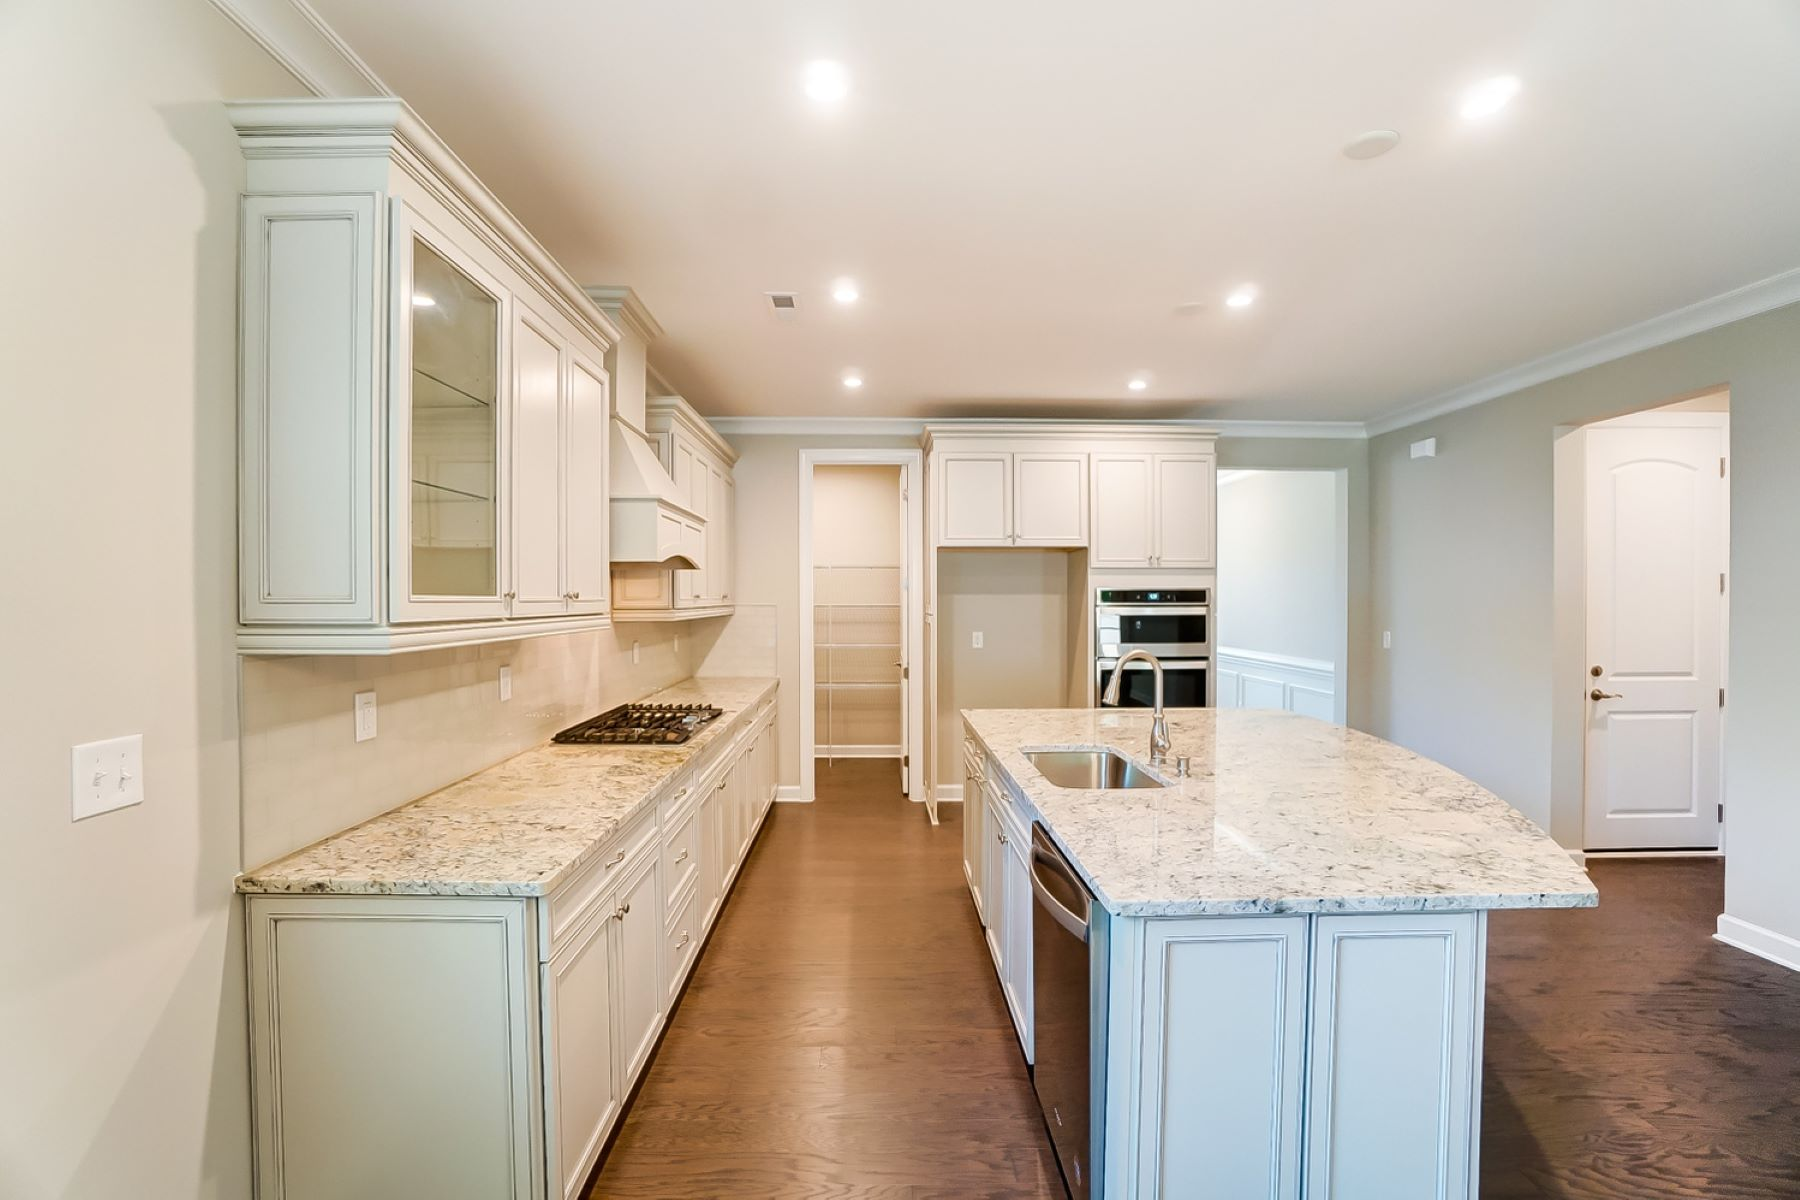 Presley Plan Kitchen at Sonata at Mint Hill in Mint Hill North Carolina by Mattamy Homes